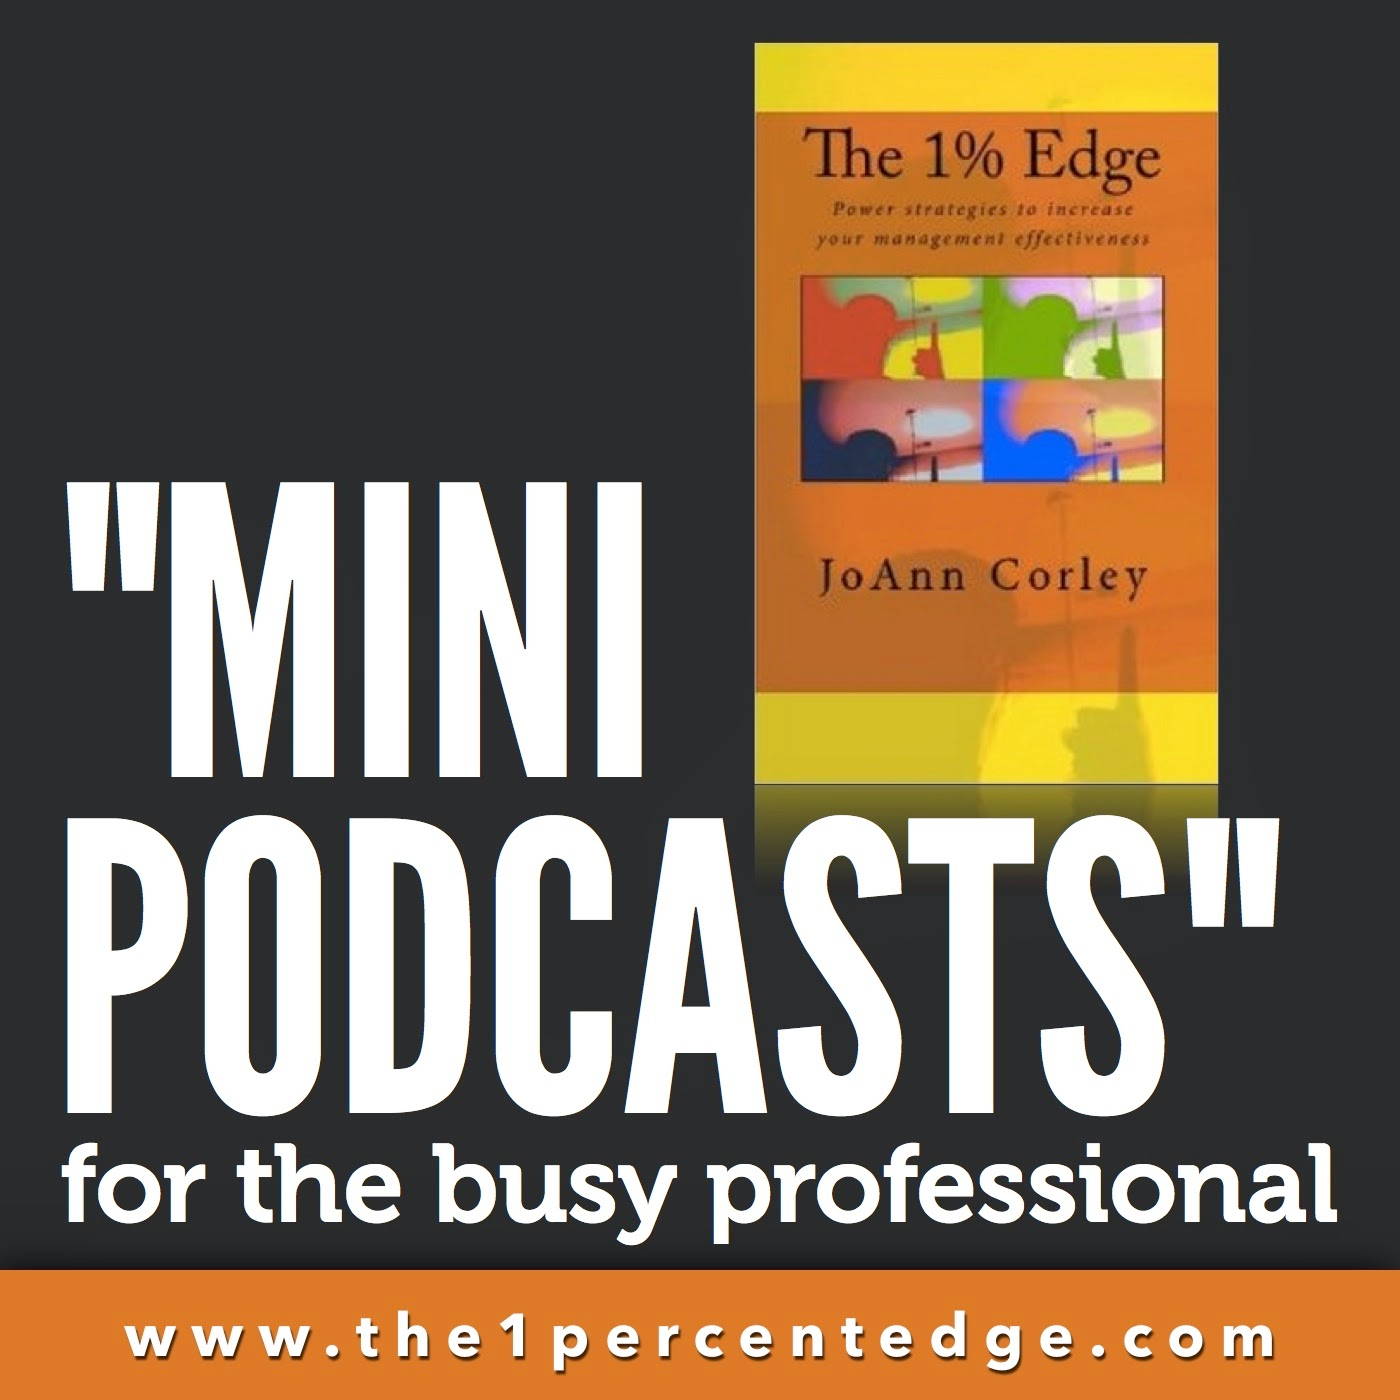 No Time To Read? Listen on the Go! Check out the audio version of The 1% Edge!